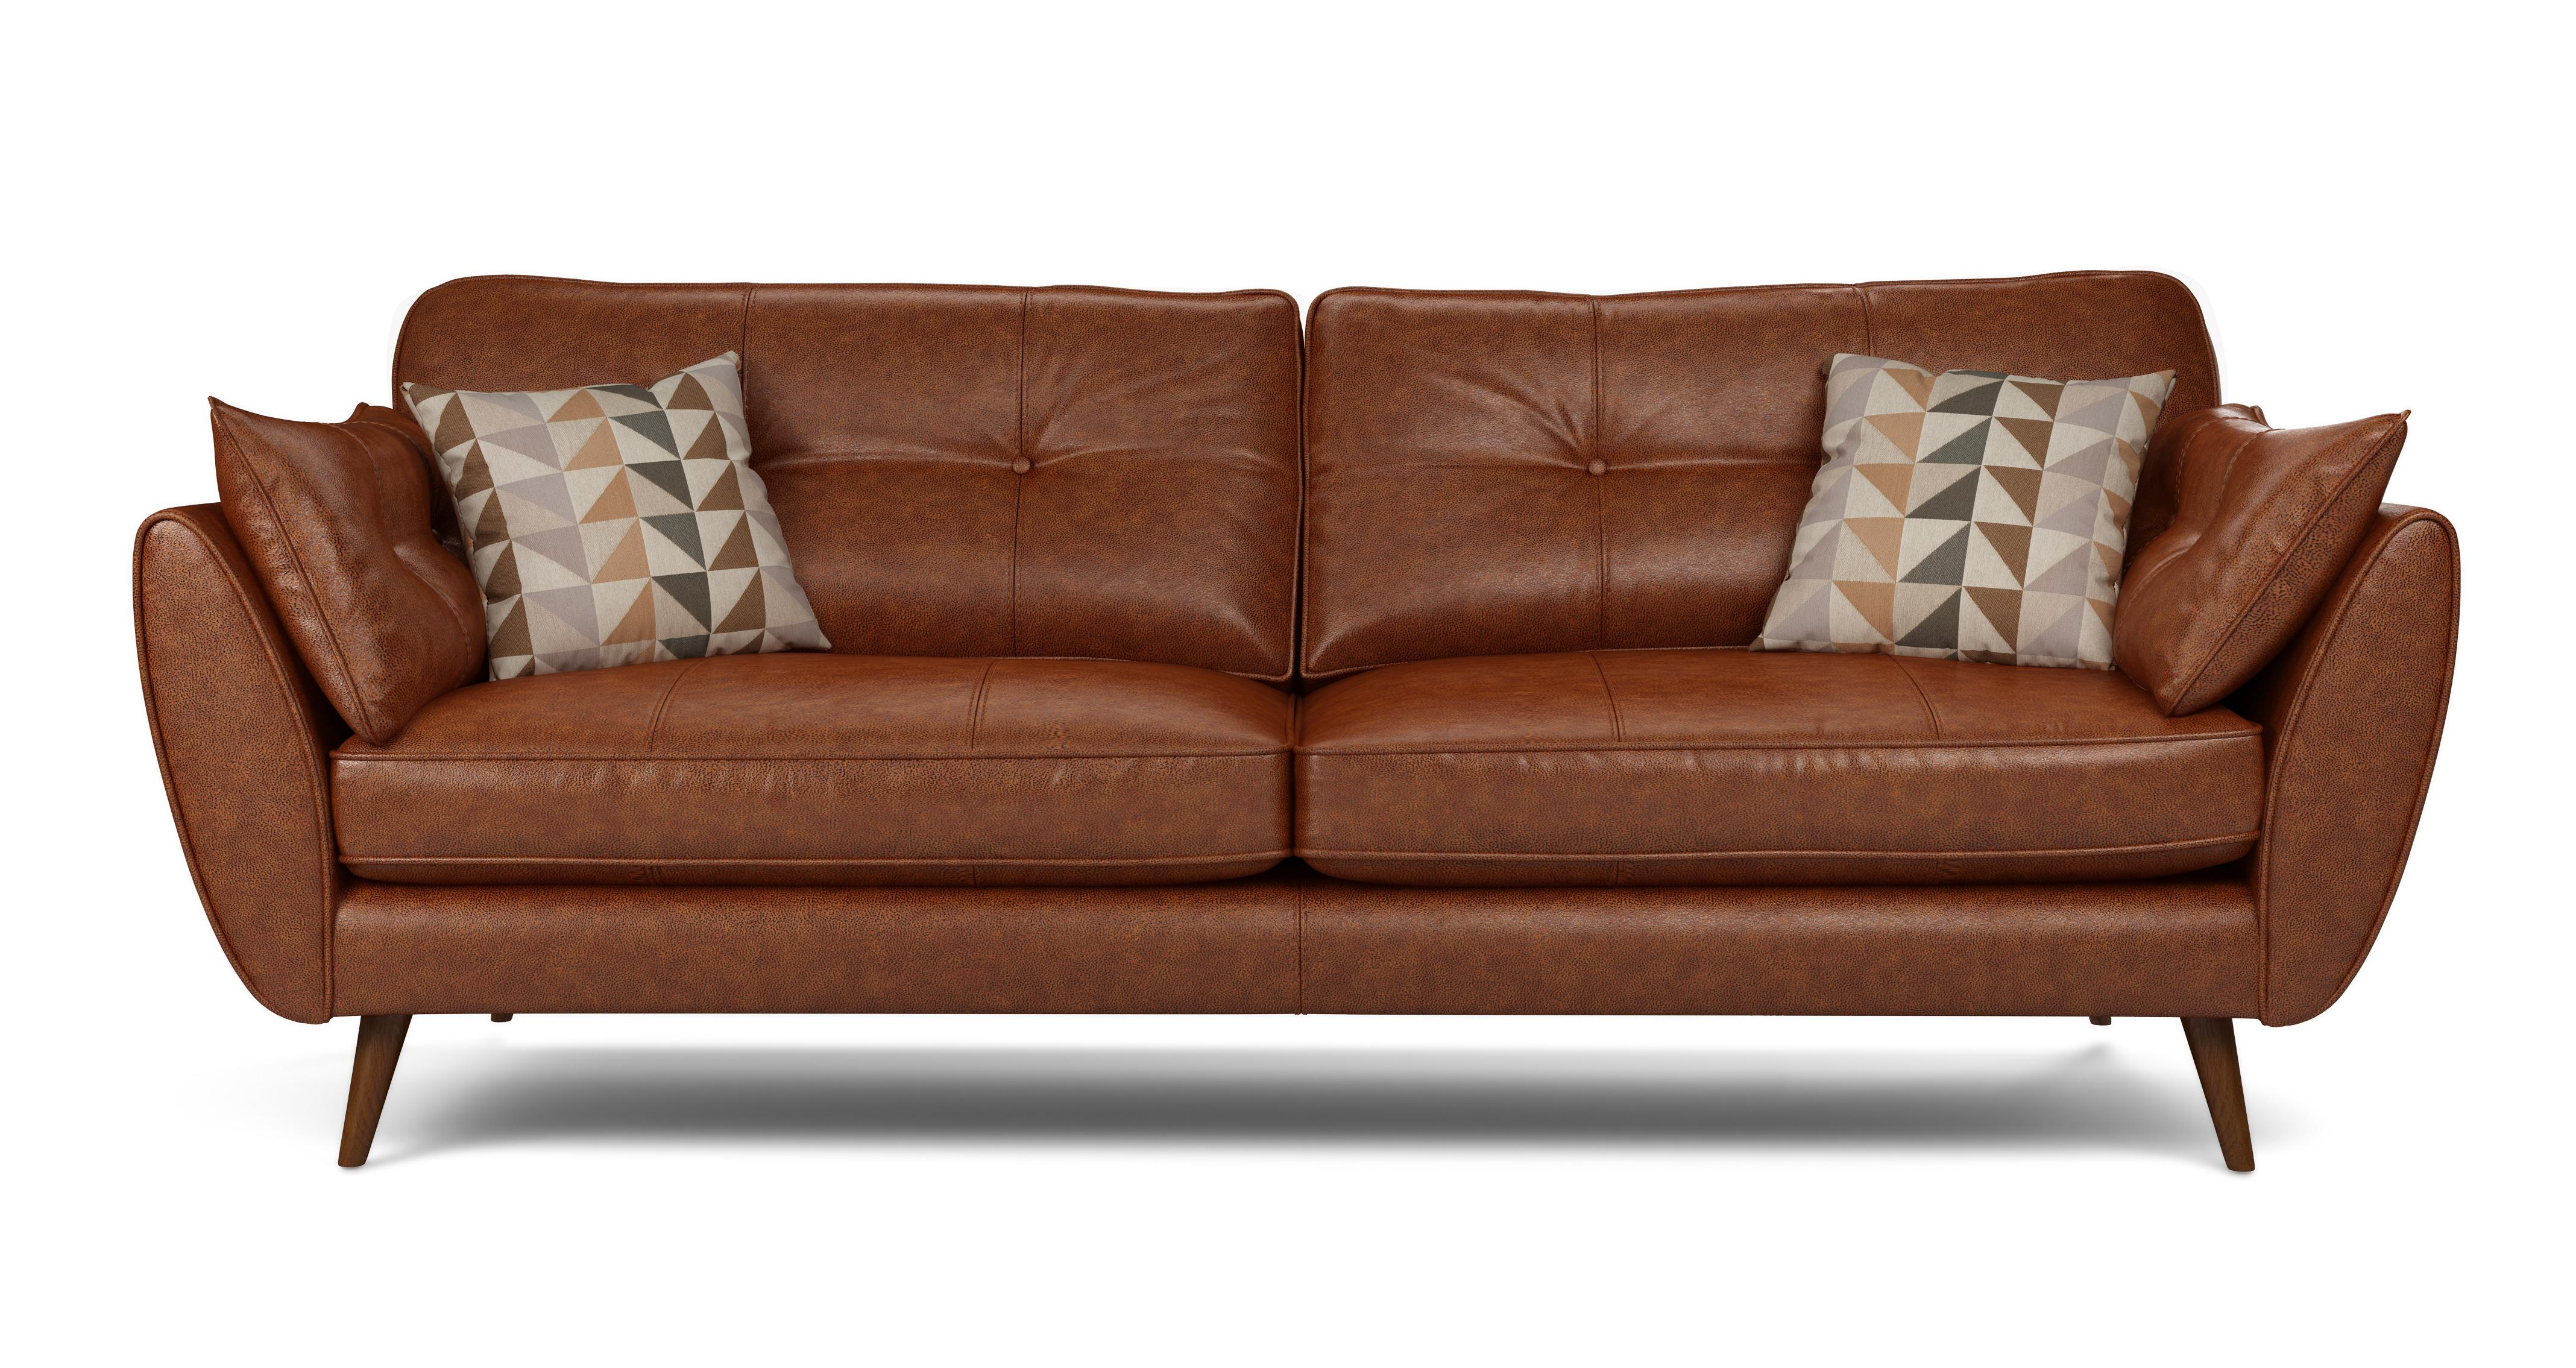 leather sofas dfs ashley furniture reclining sofa and loveseat sales deals browns winter sale zinc 4 seater french connection